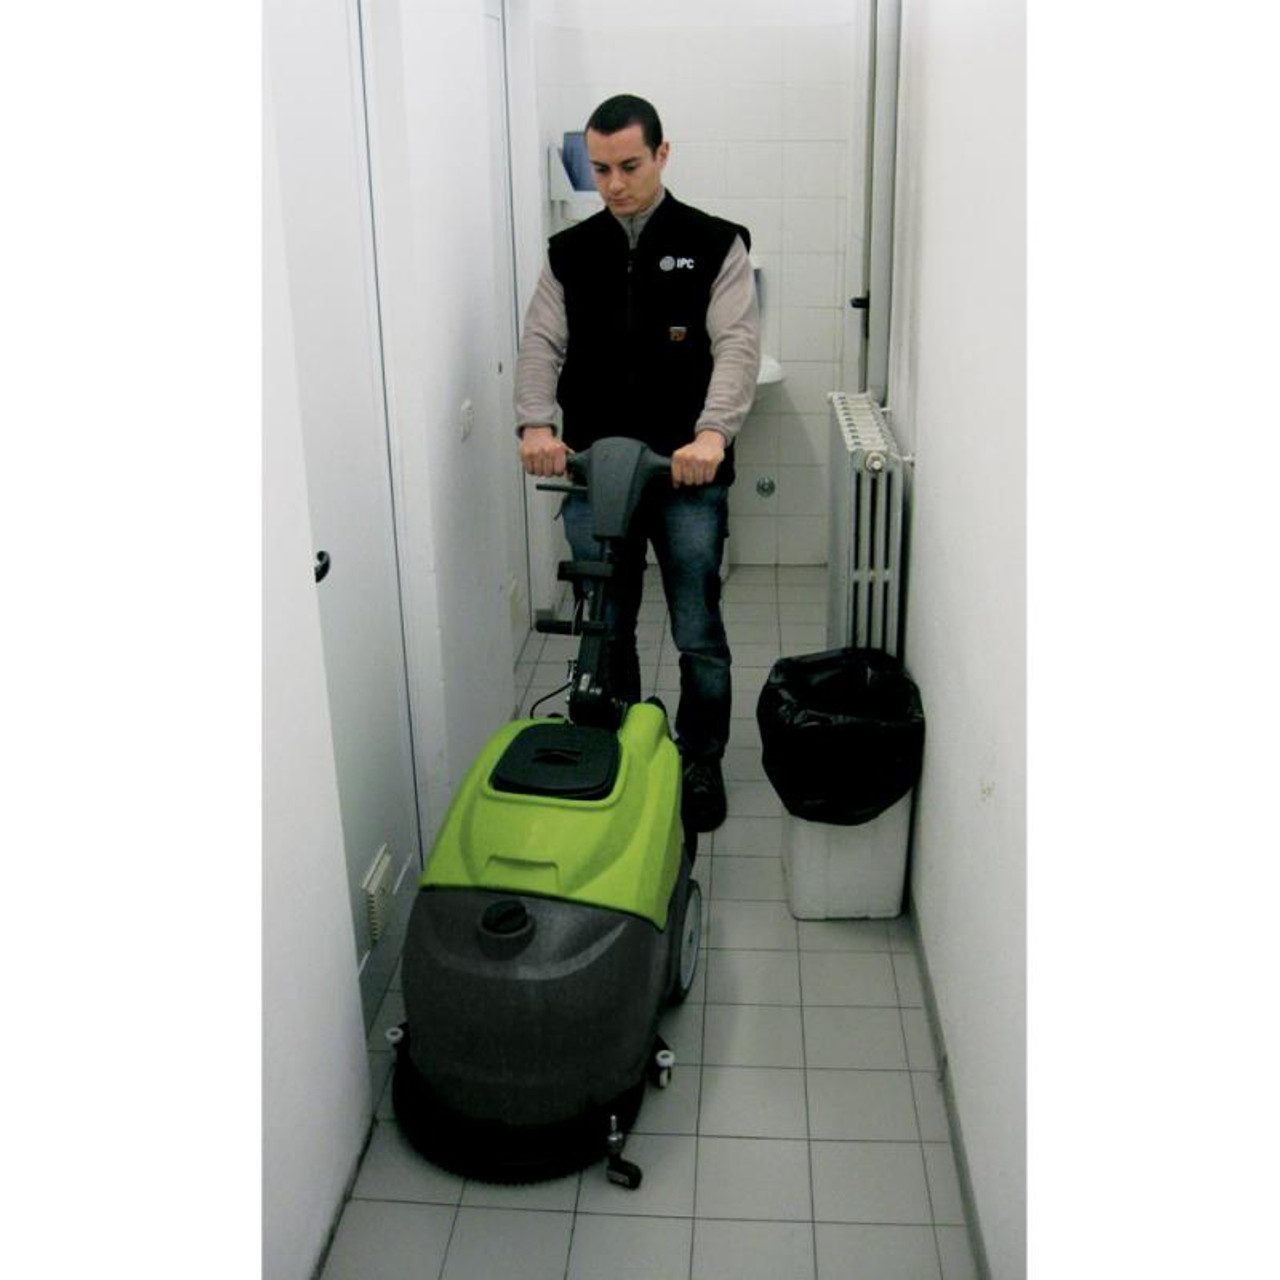 The CT 30 Fits in small spaces.